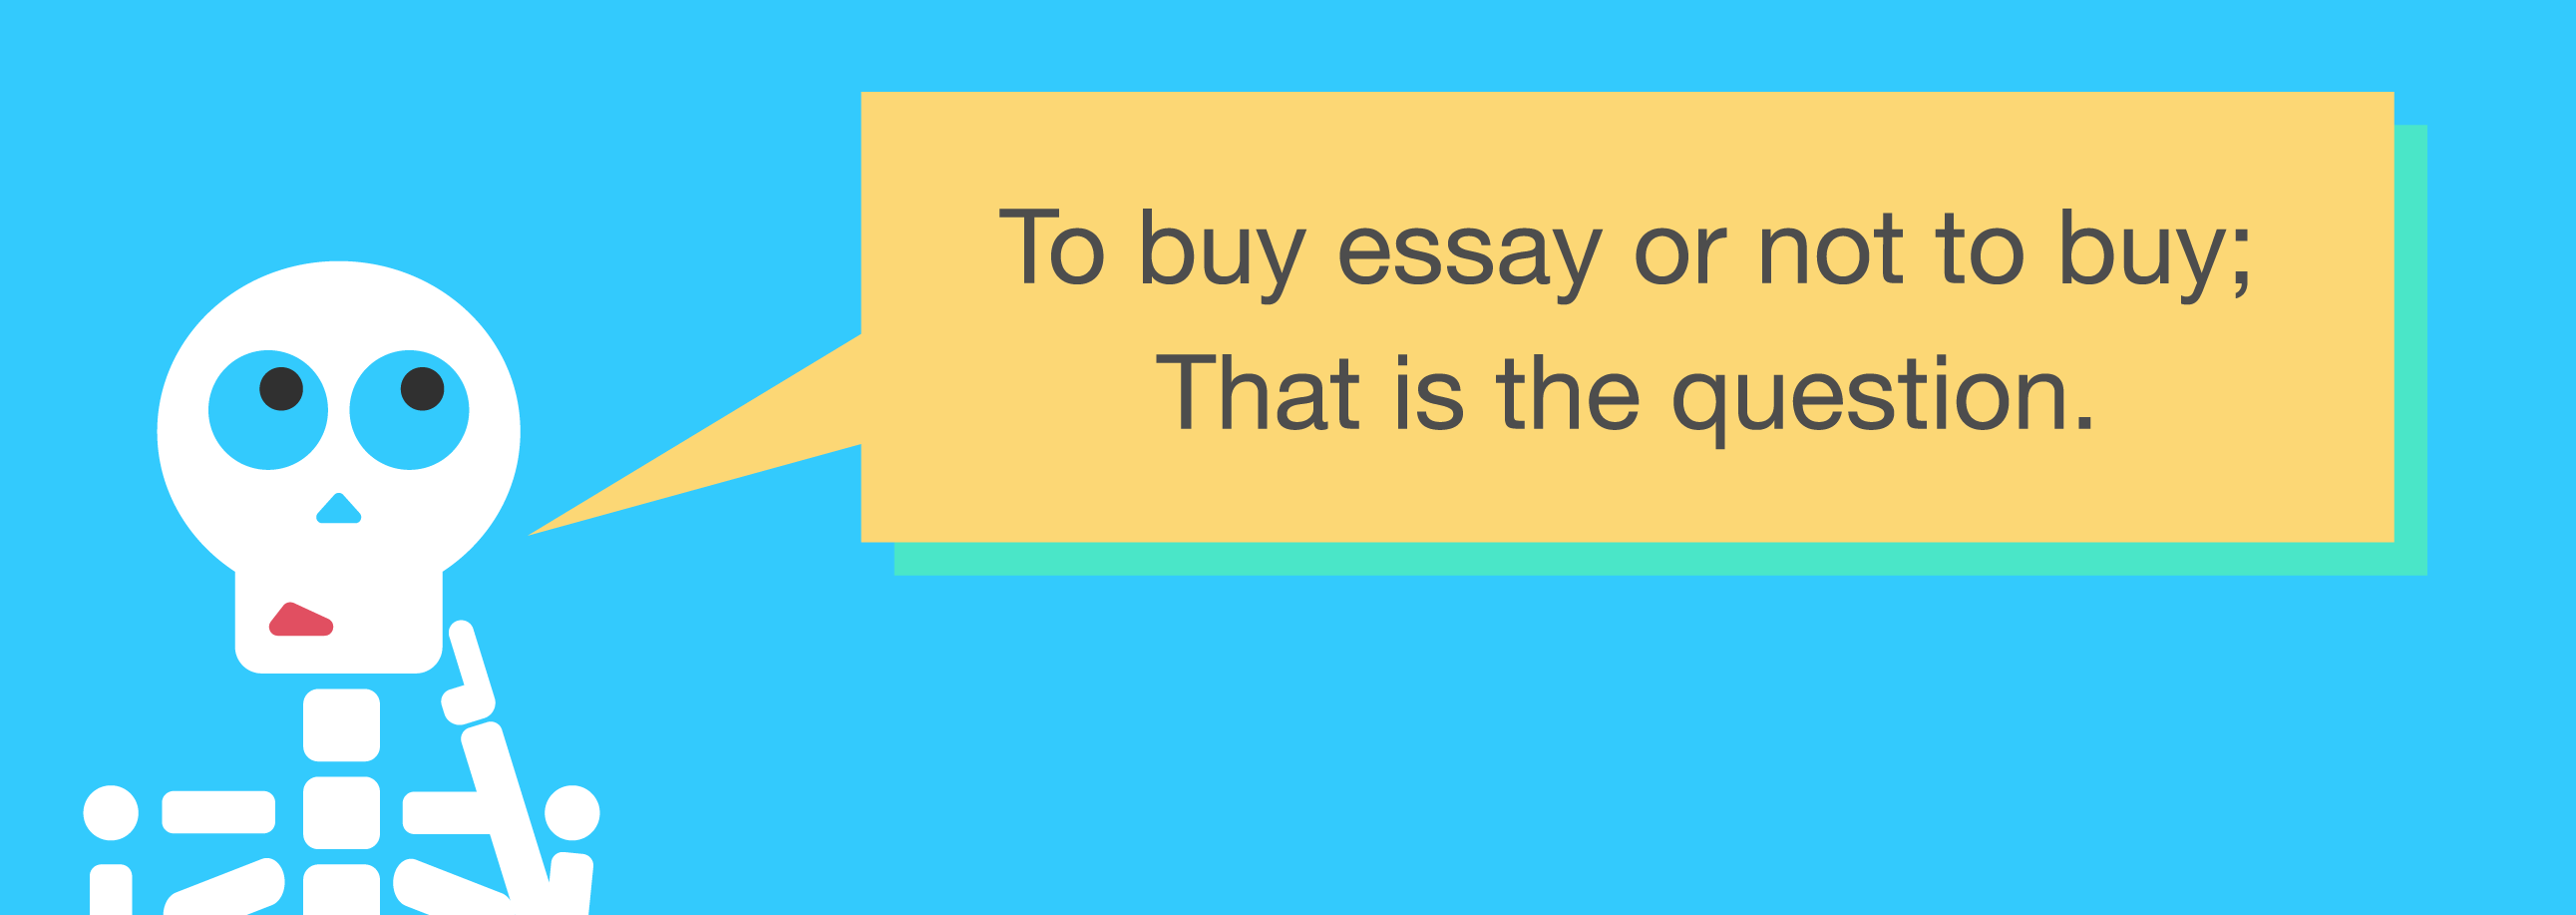 To buy essay or not to buy